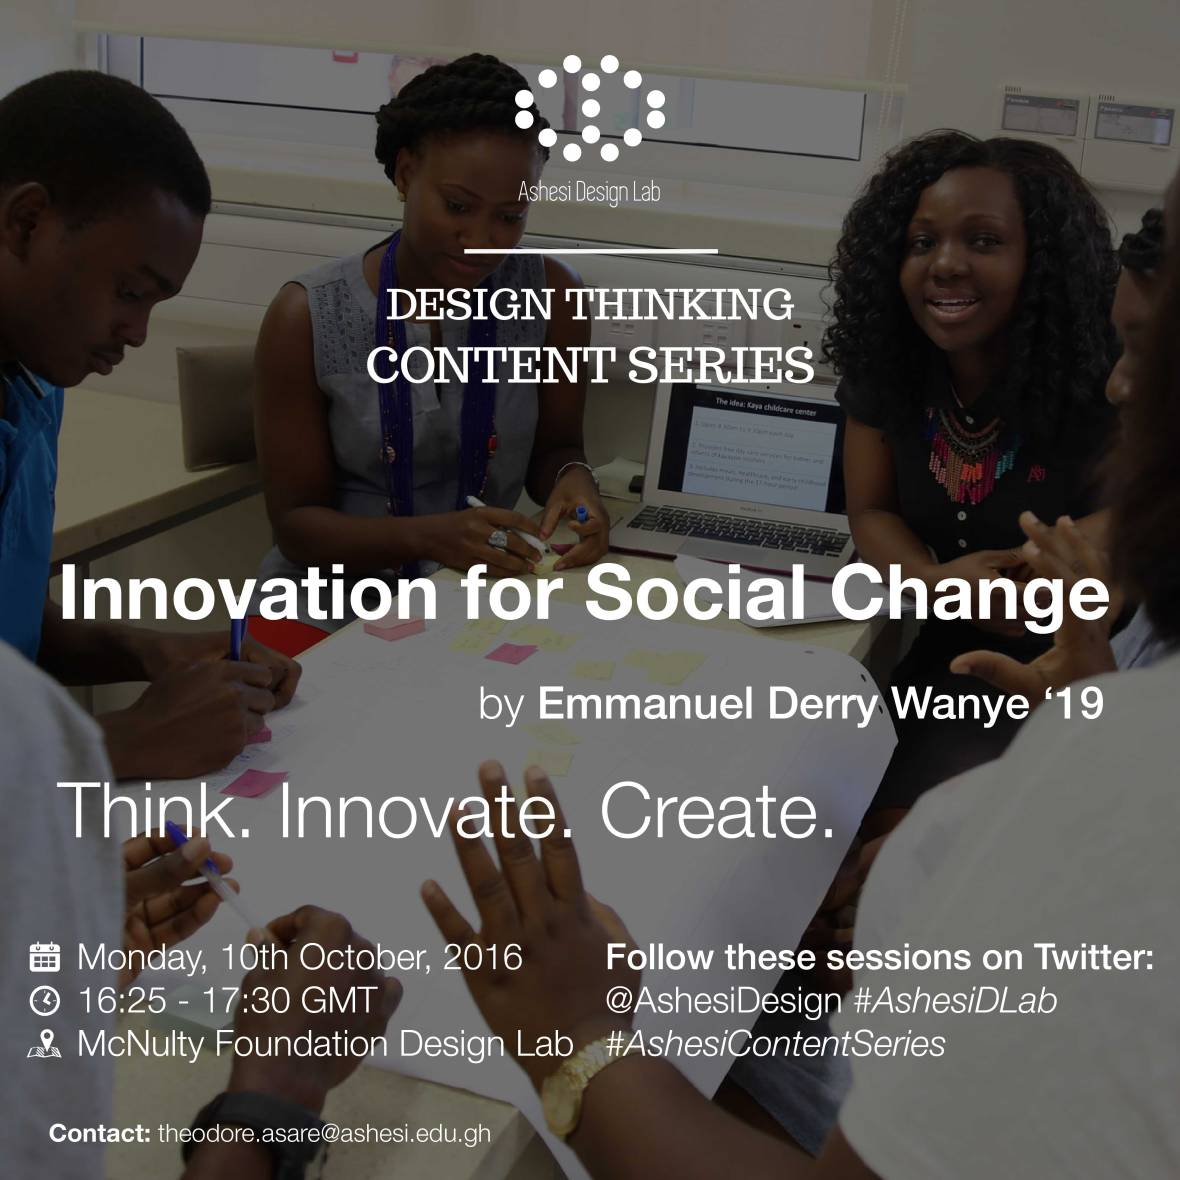 ashesi-dlab-content-series-innovation-for-social-change-01